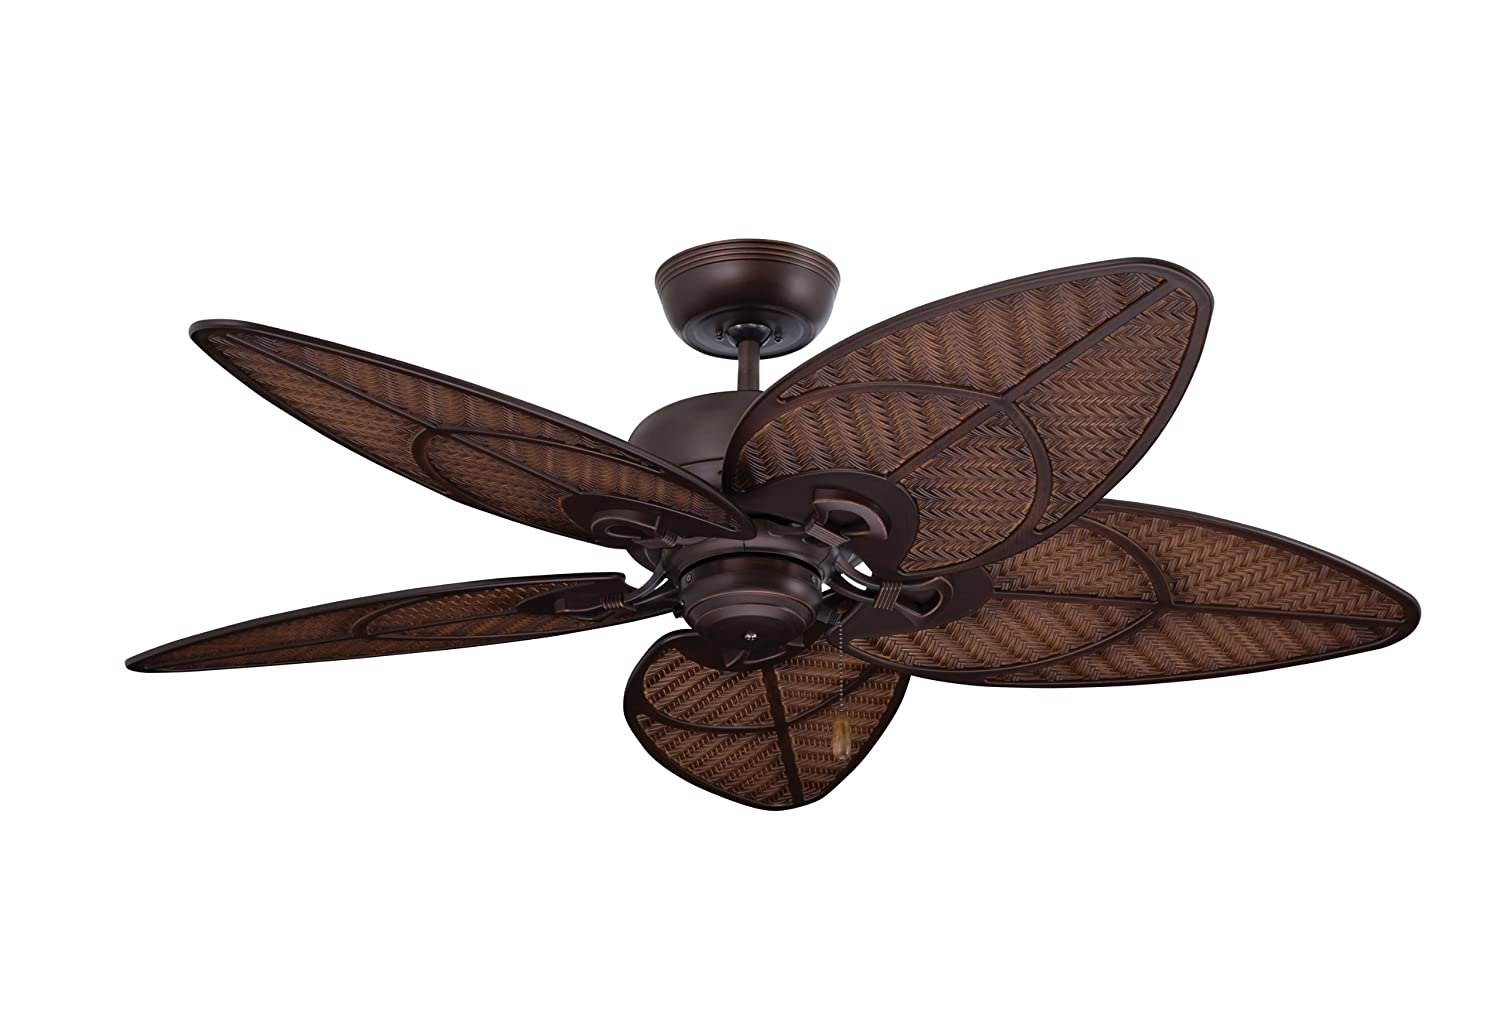 Emerson Ceiling Fans CF621VNB Batalie Breeze 52-Inch Indoor Outdoor ...